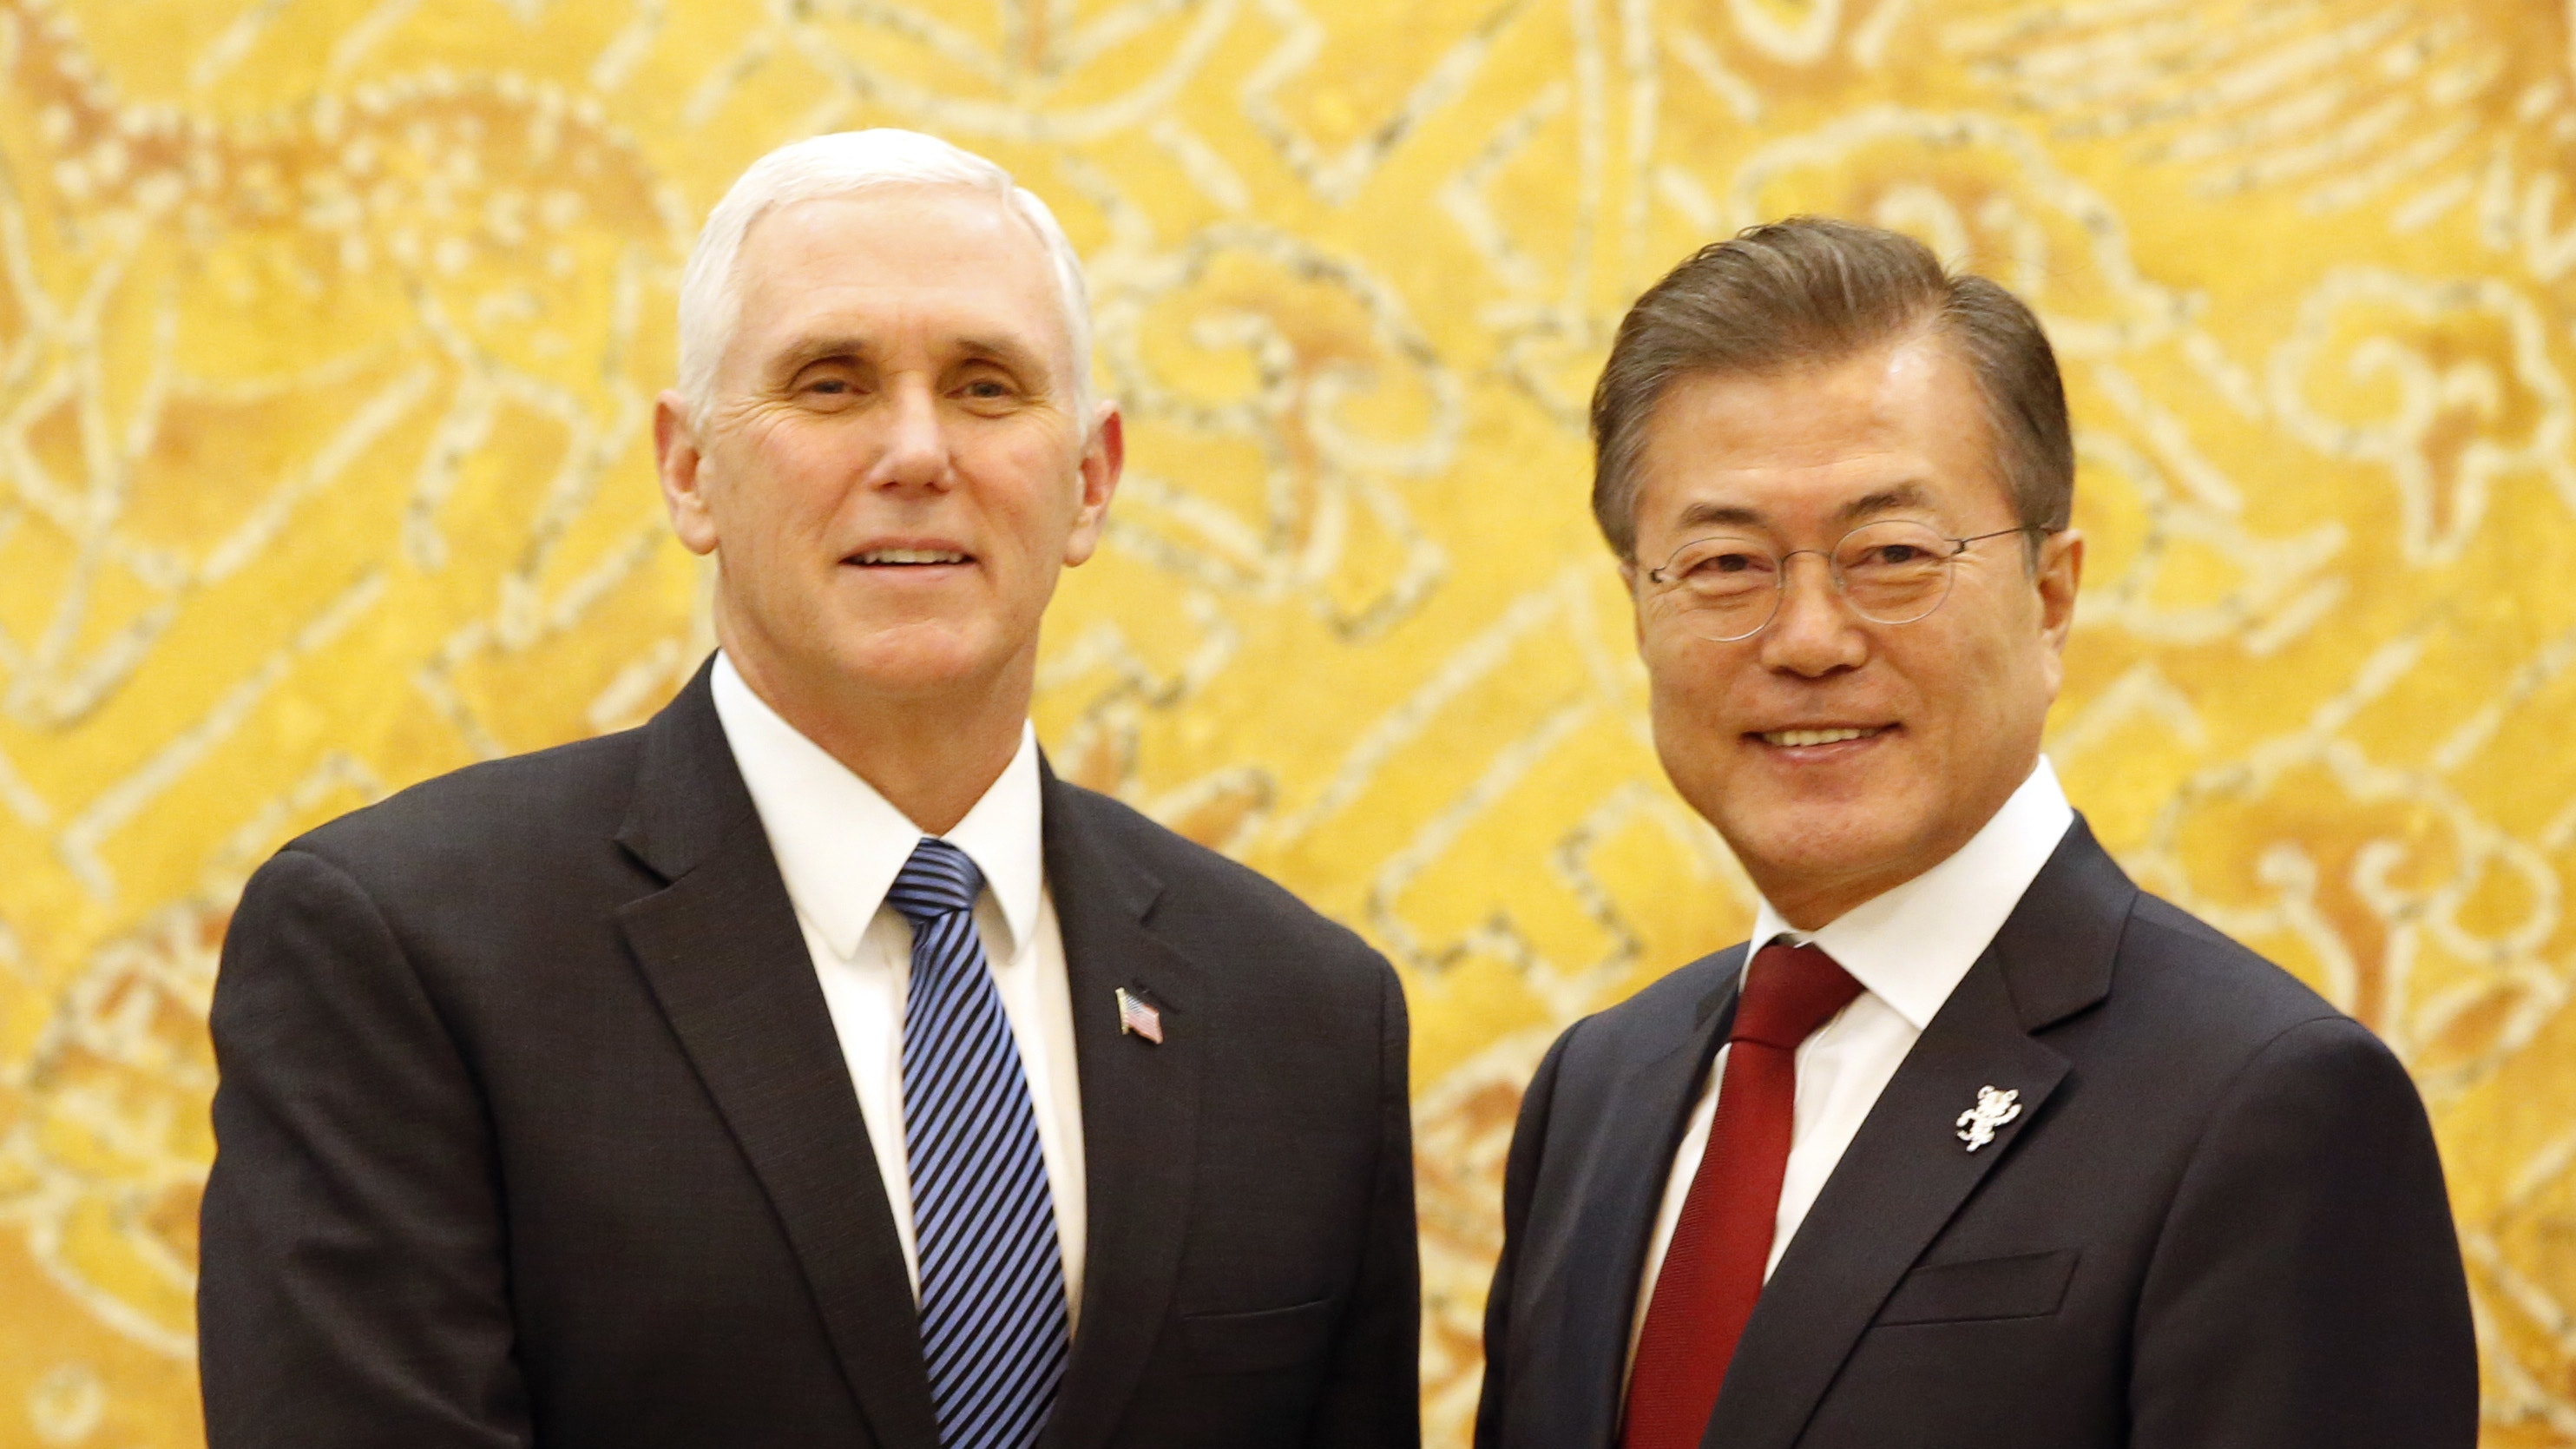 North Korea says it's not interested in meeting US VP Pence